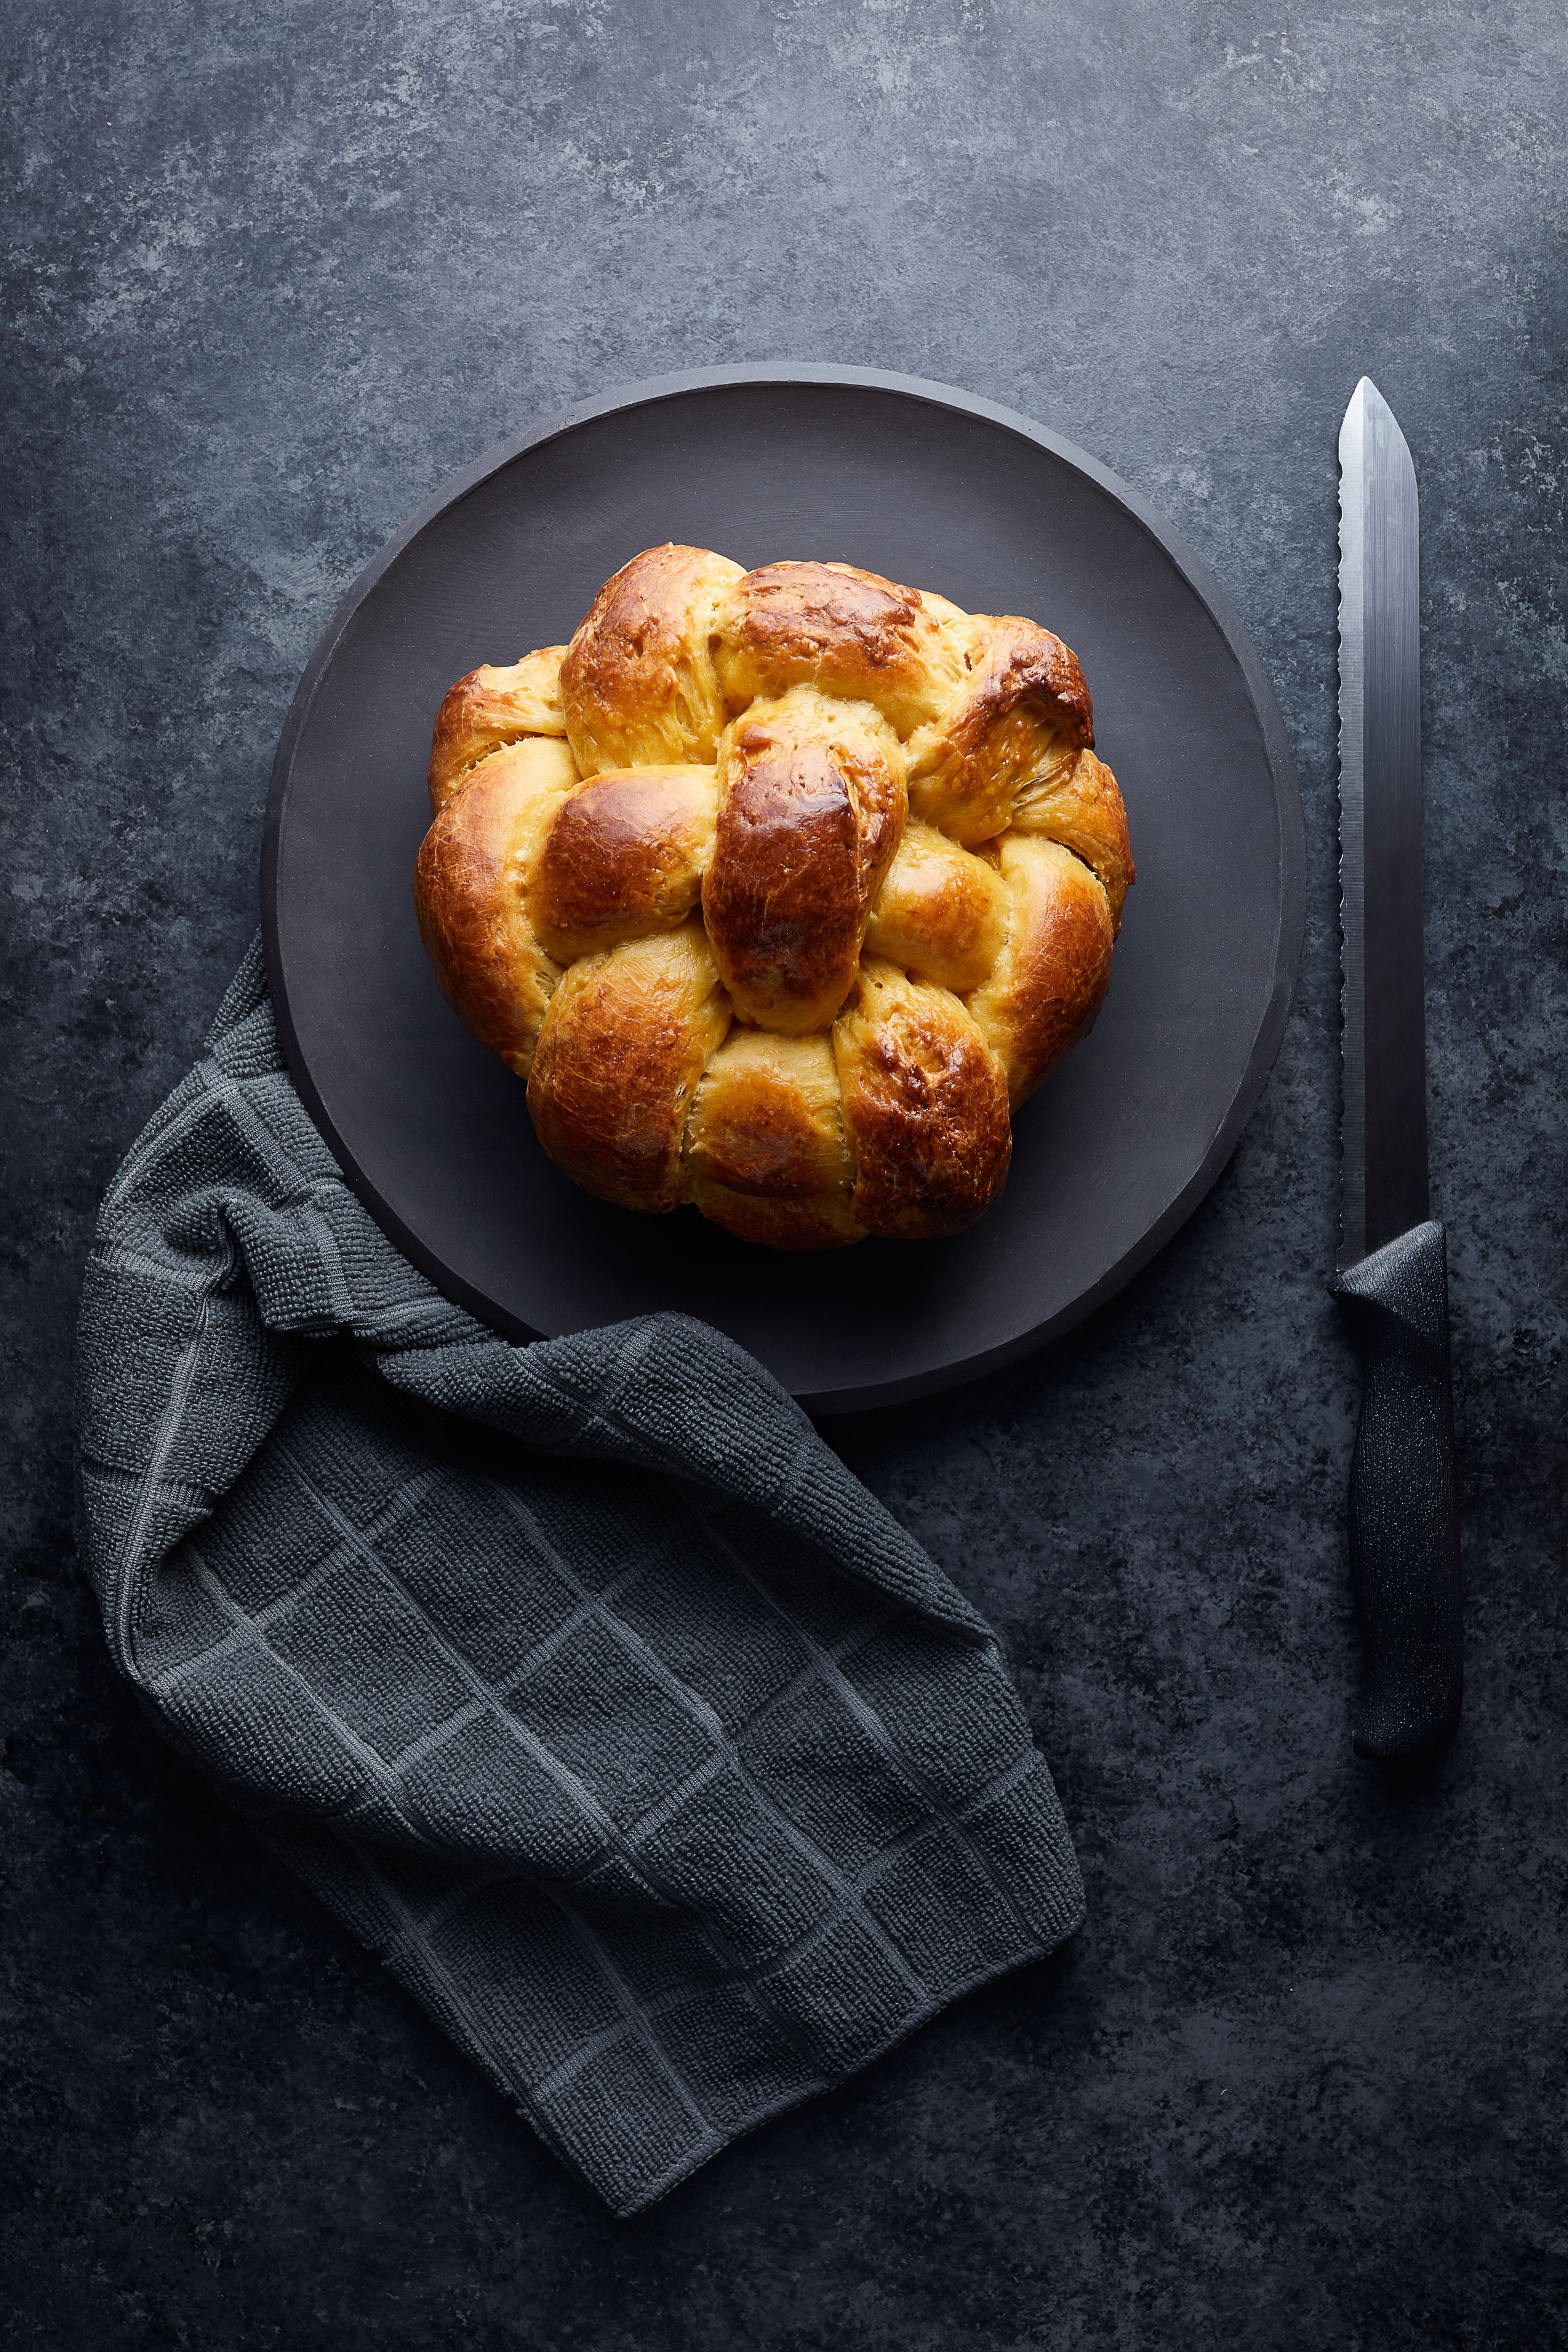 Olive-Oil-Challah-Bread-Best-Camera-for-Food-Photography.jpg